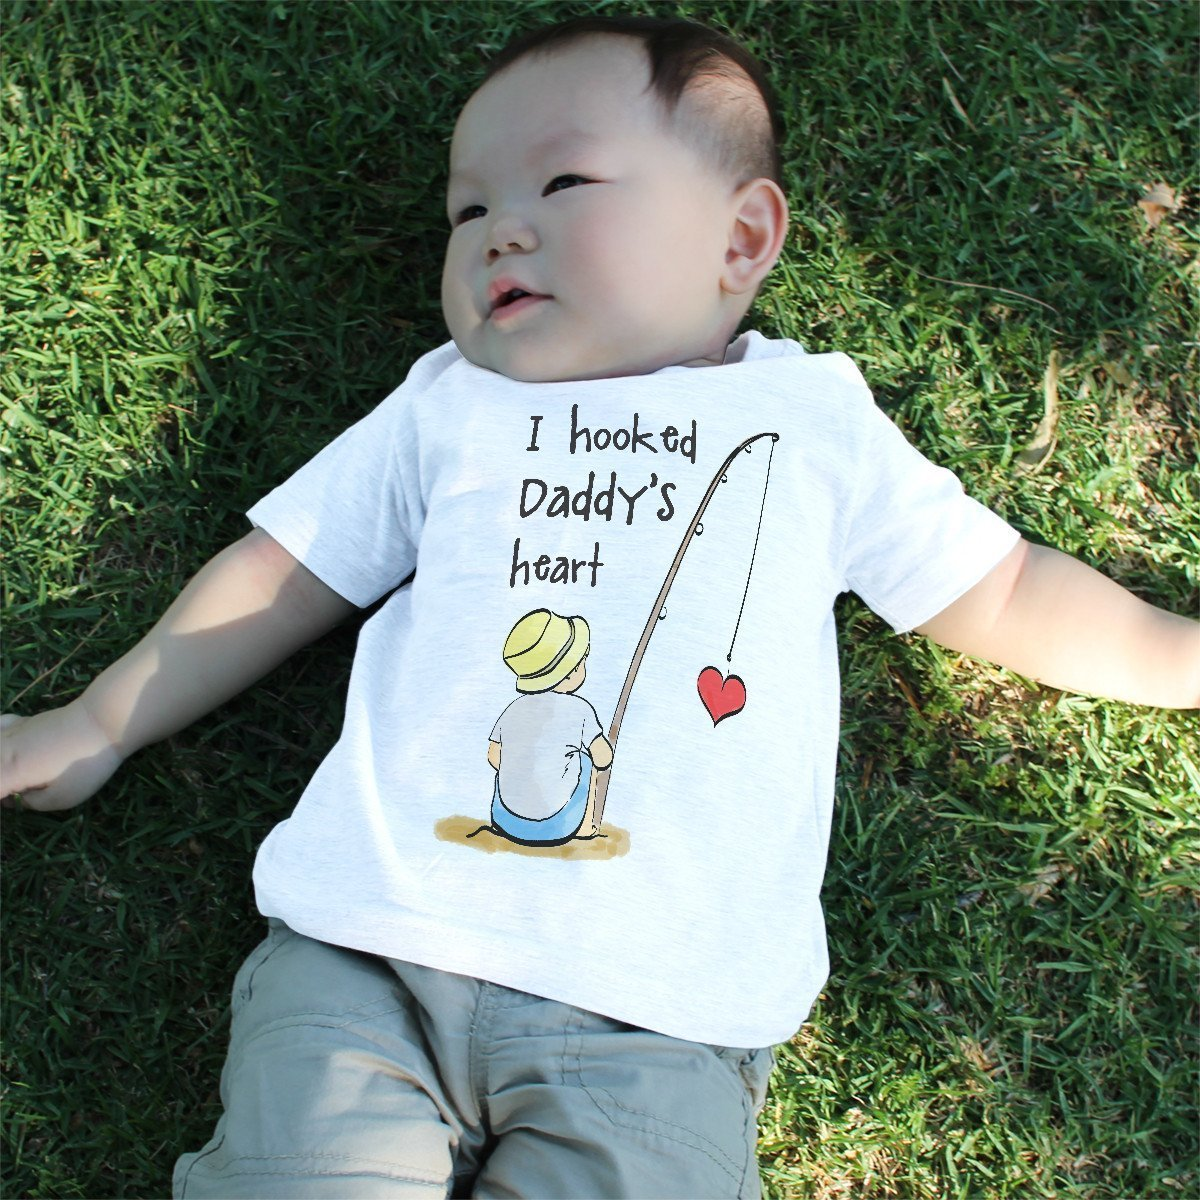 I Hooked Daddy's Heart Baby Shirt